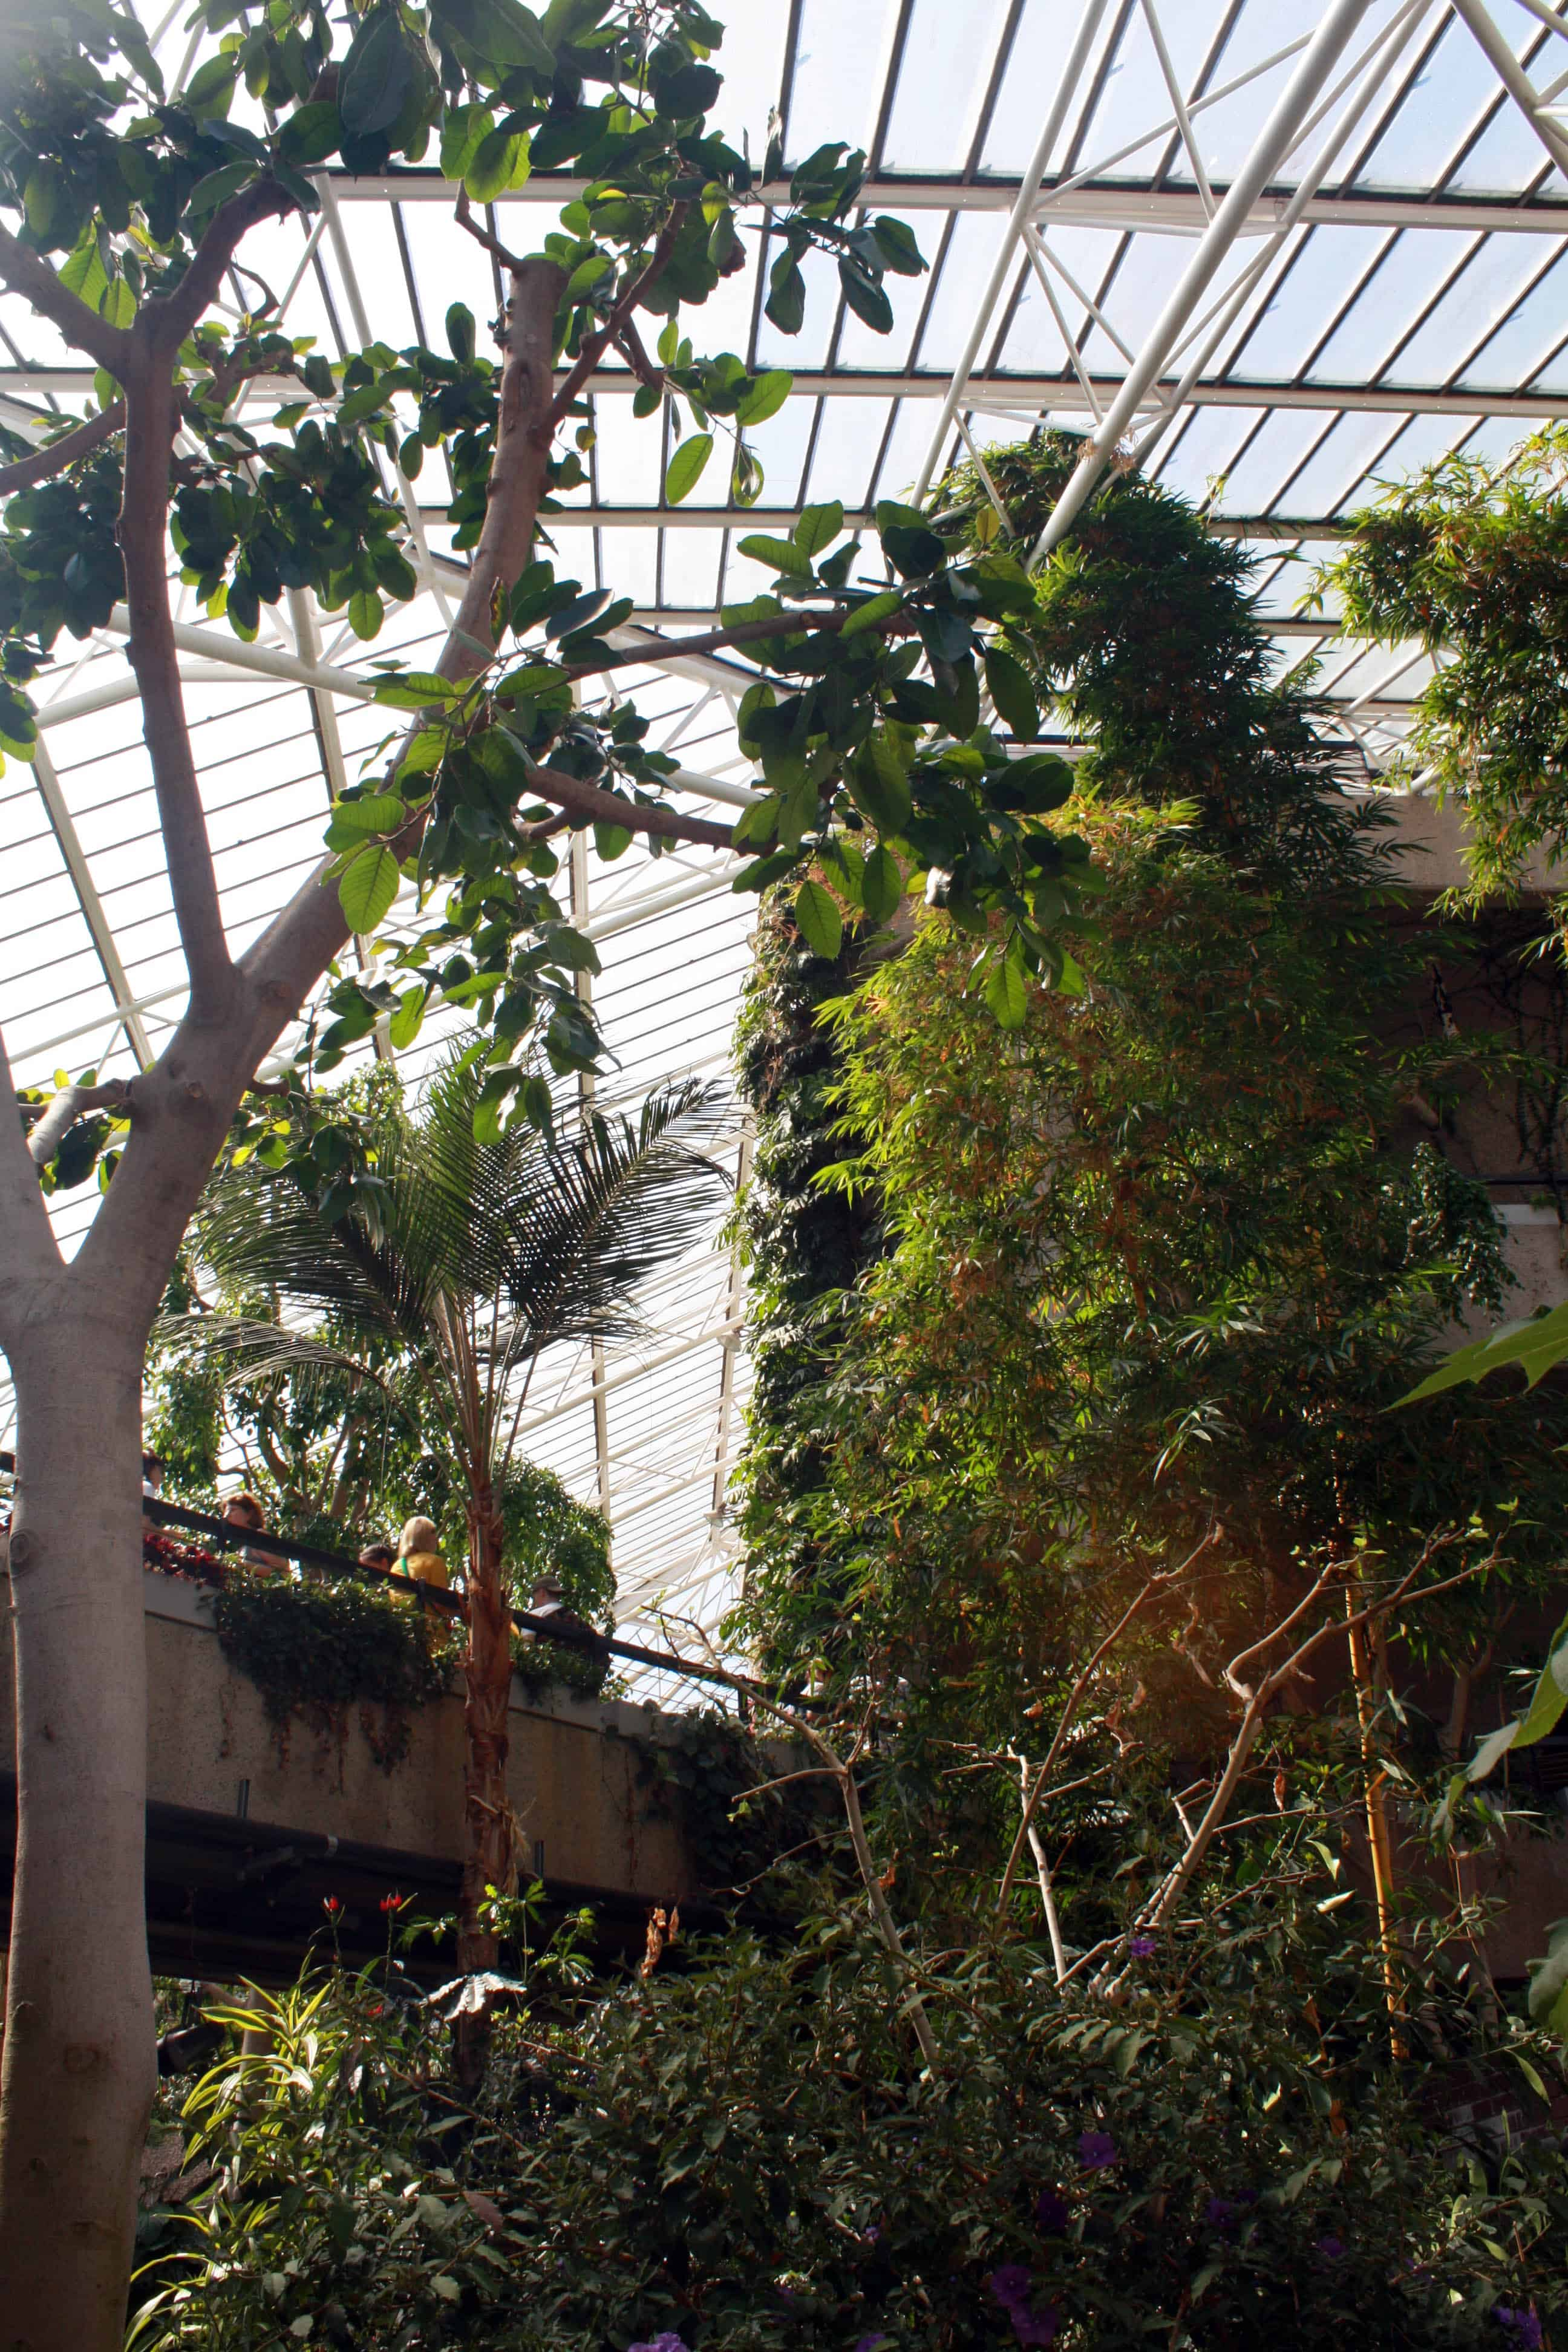 Bridge and trees in Barbican Conservatory, London